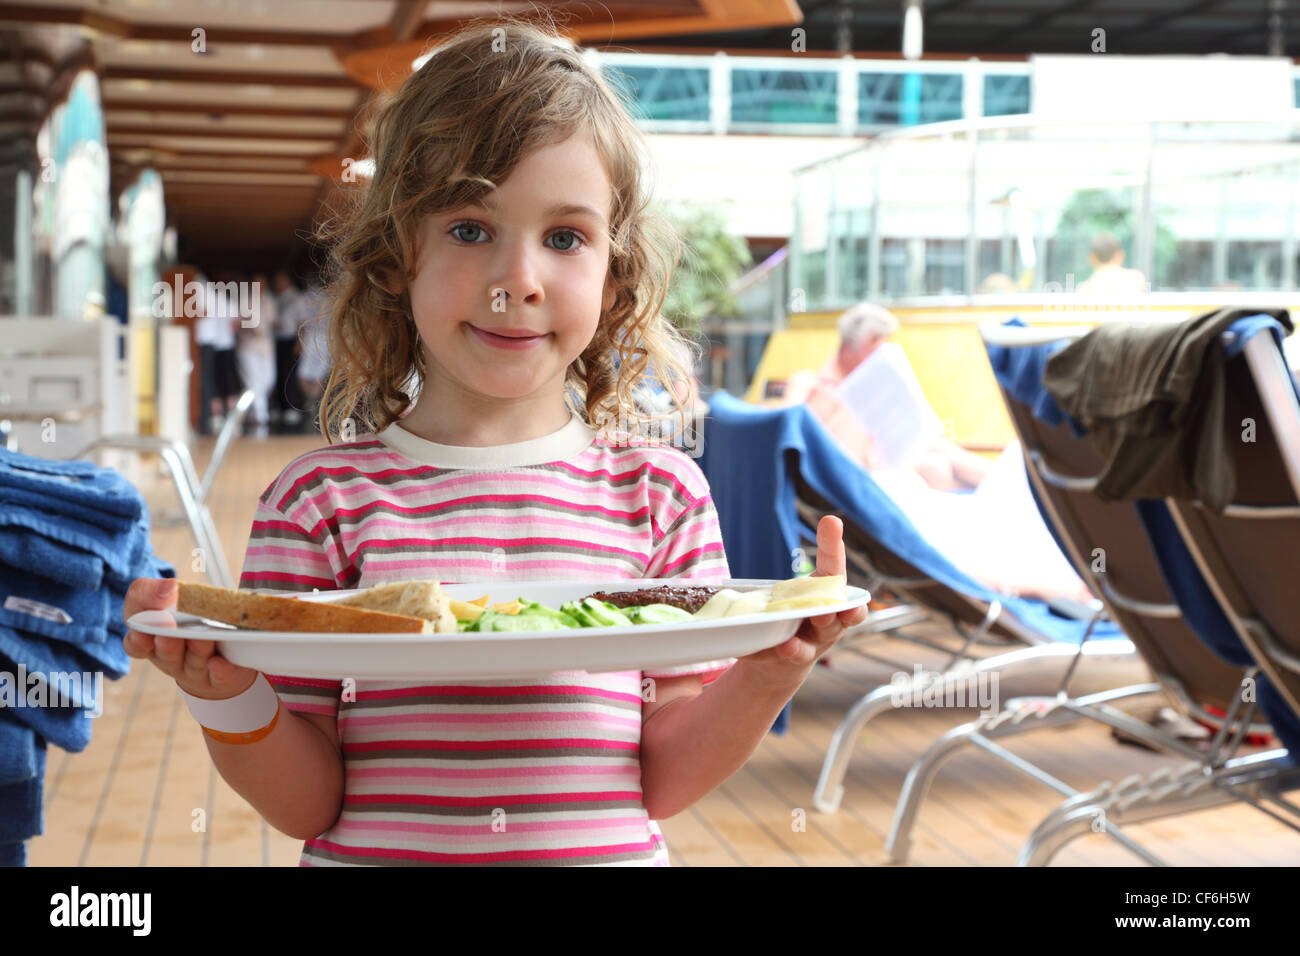 little girl standing and holding tray with food on cruise liner deck, half body - Stock Image